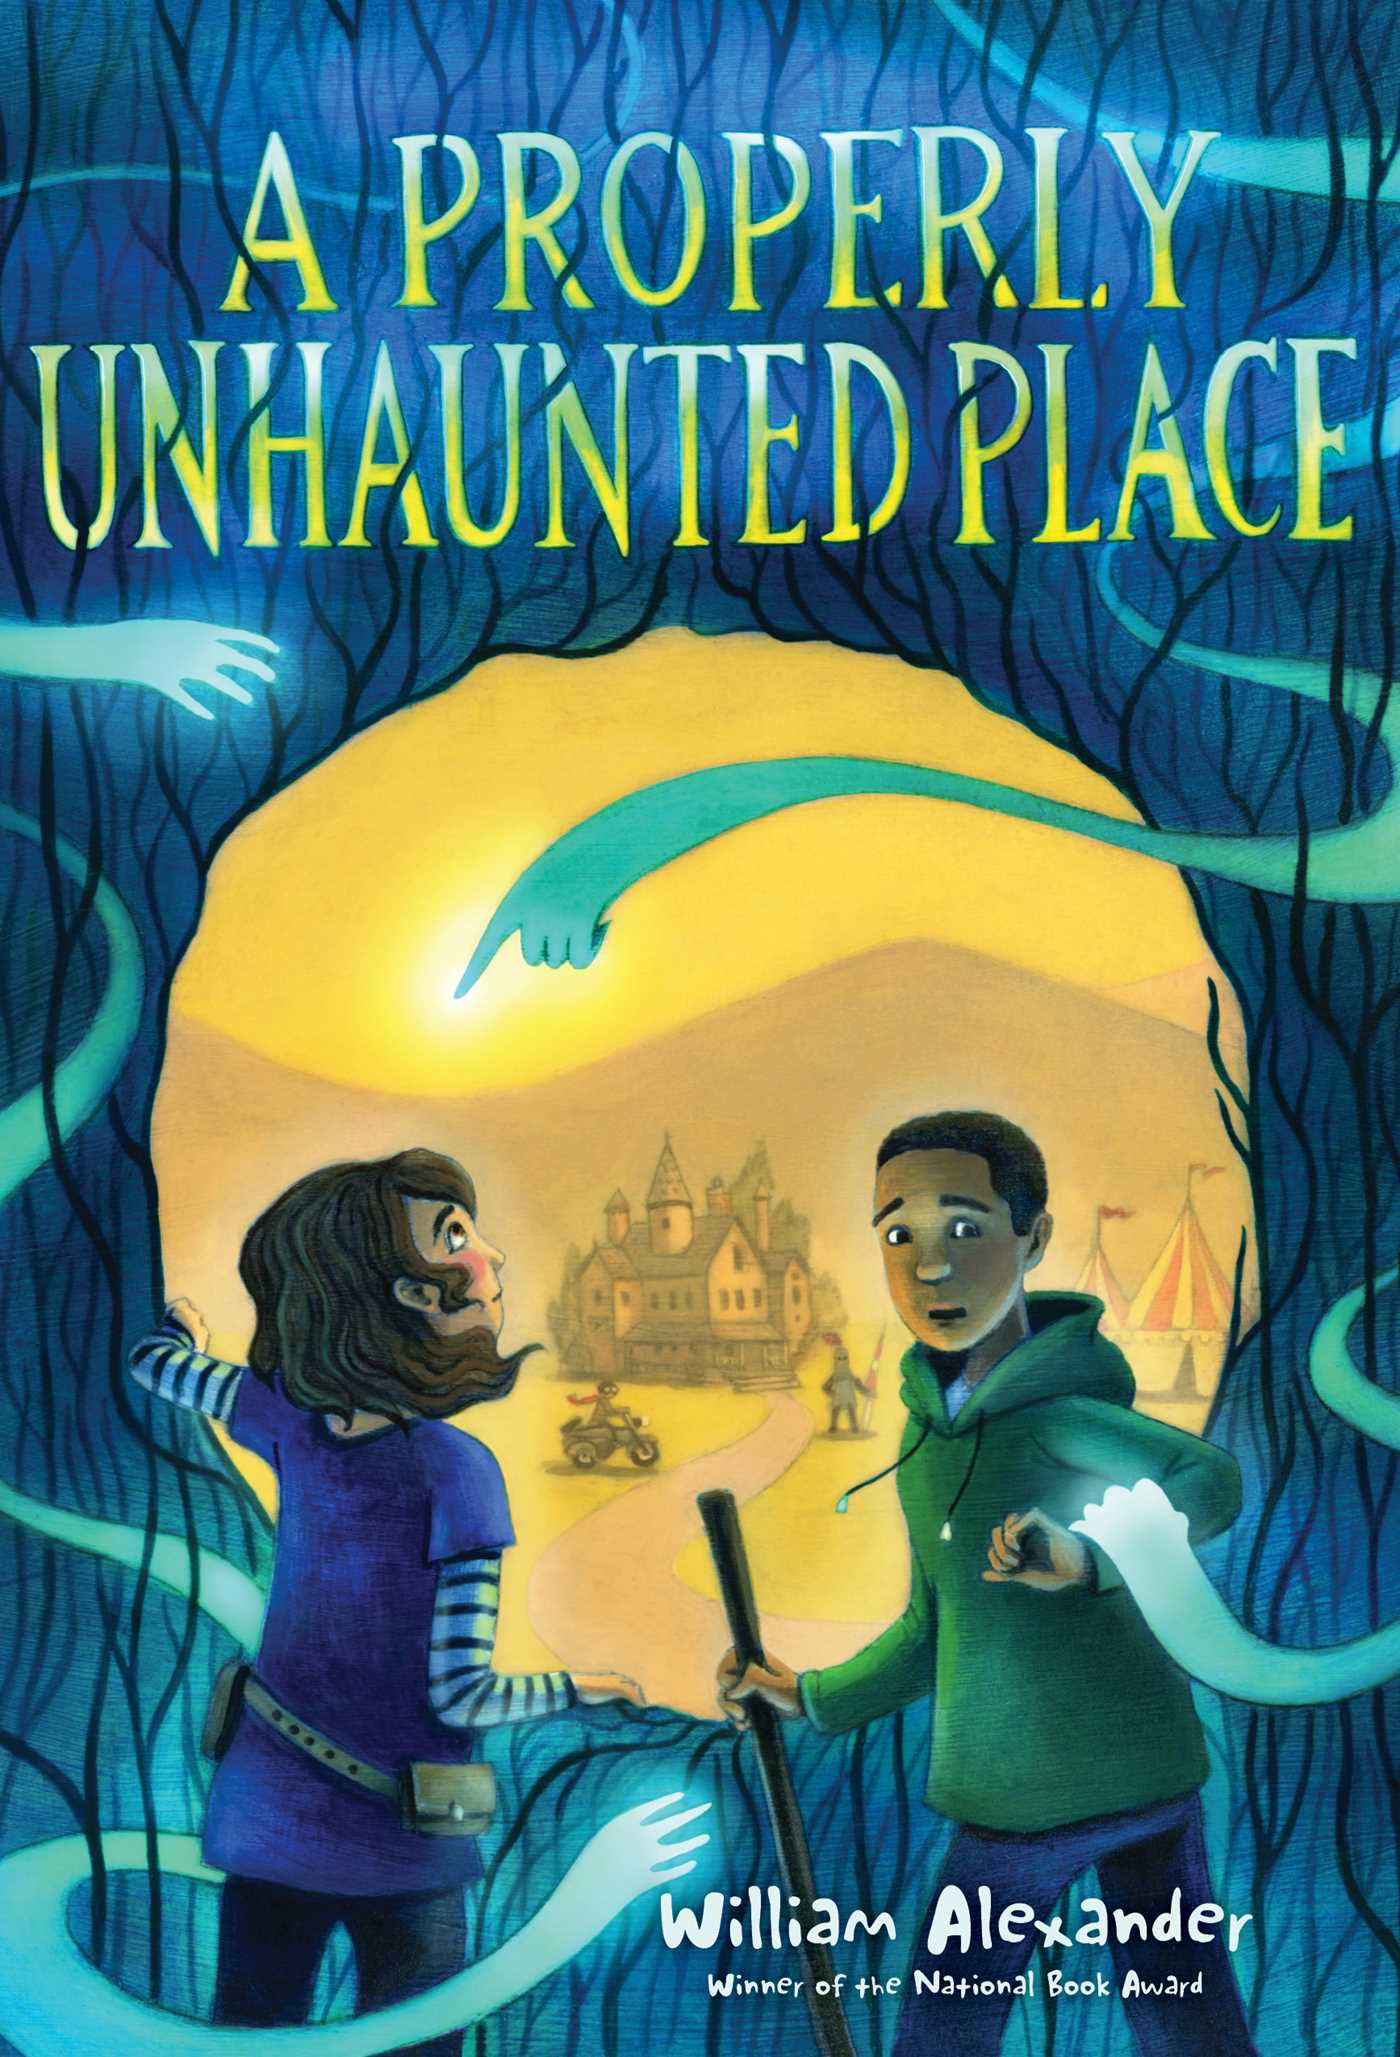 A Properly Unhaunted Place -- William Alexander